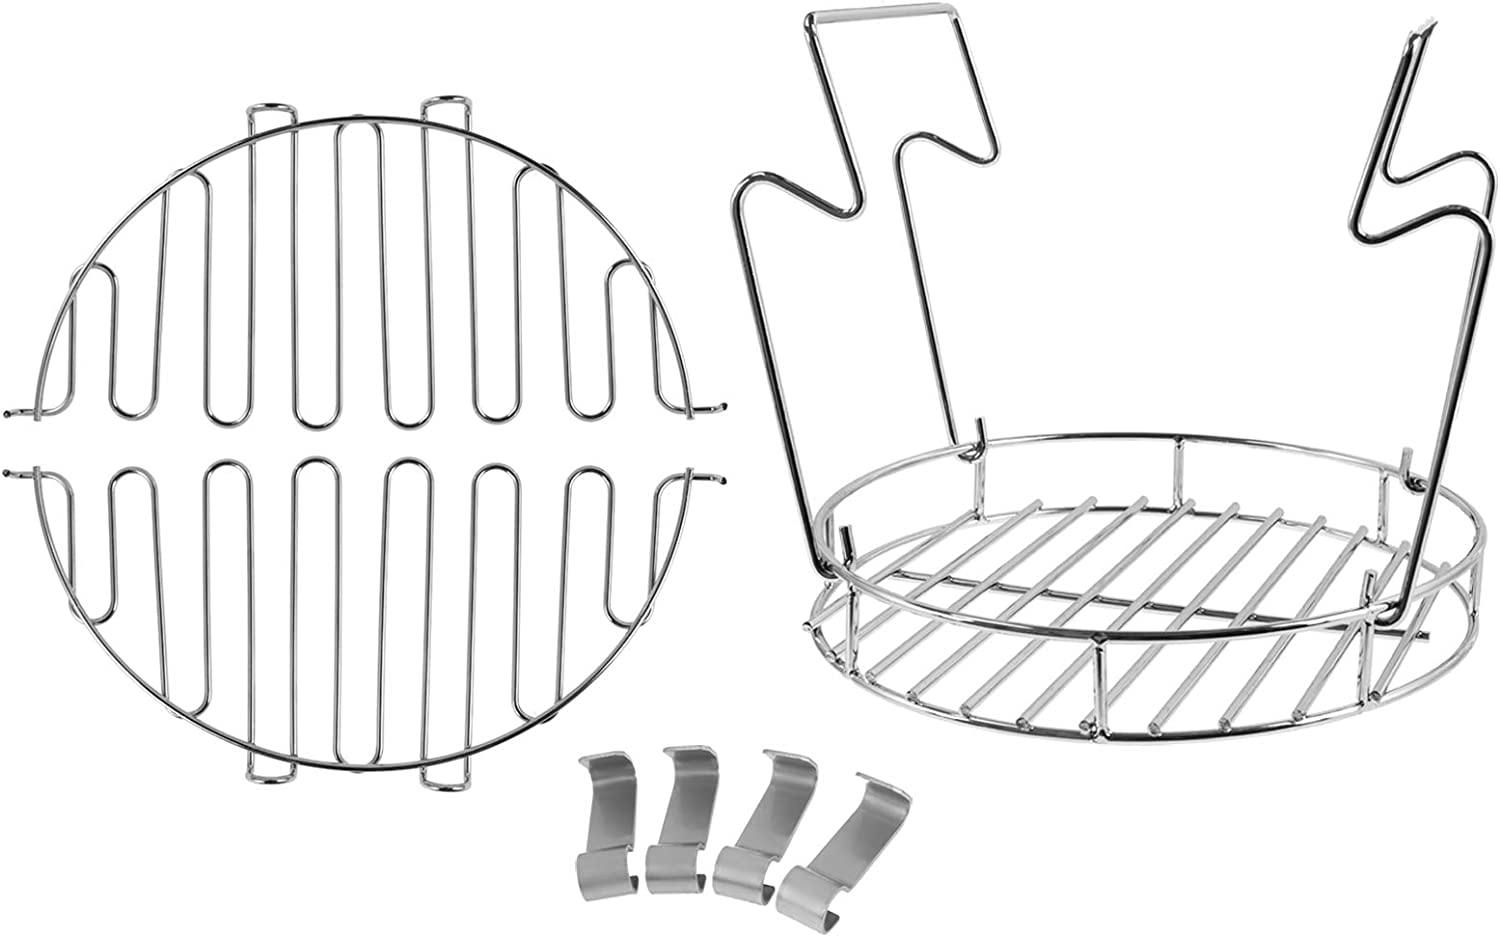 PETKAO Accessory Kit, Bunk Bed Basket, Leg Rack, Rib Hooks for Char-Broil The Big Easy Turkey Fryer, Stainless Steel